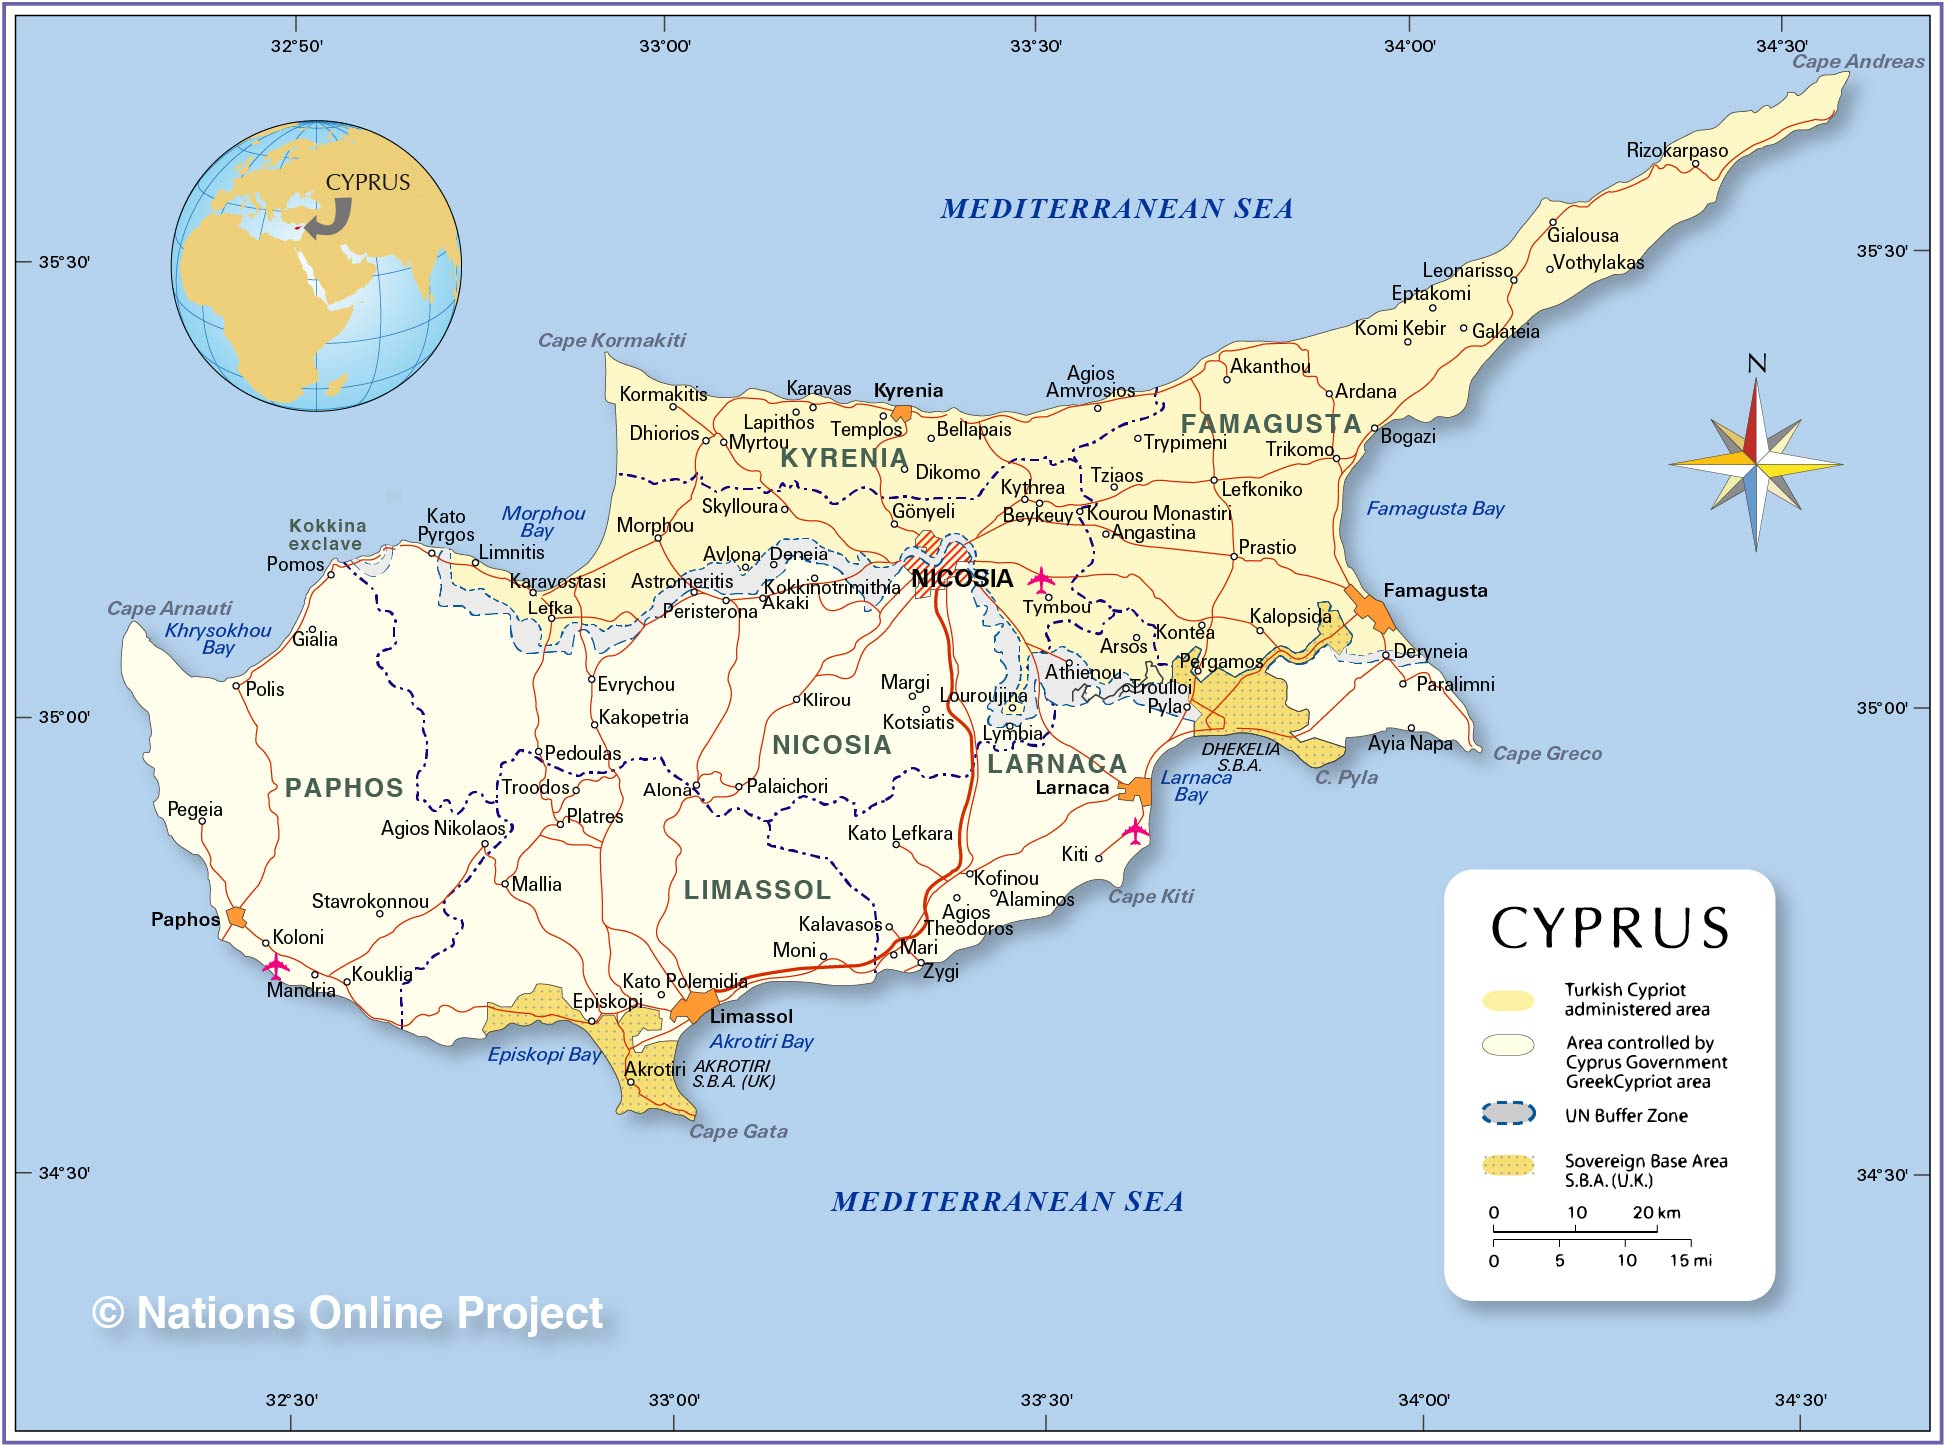 http://www.nationsonline.org/maps/cyprus_map.jpg